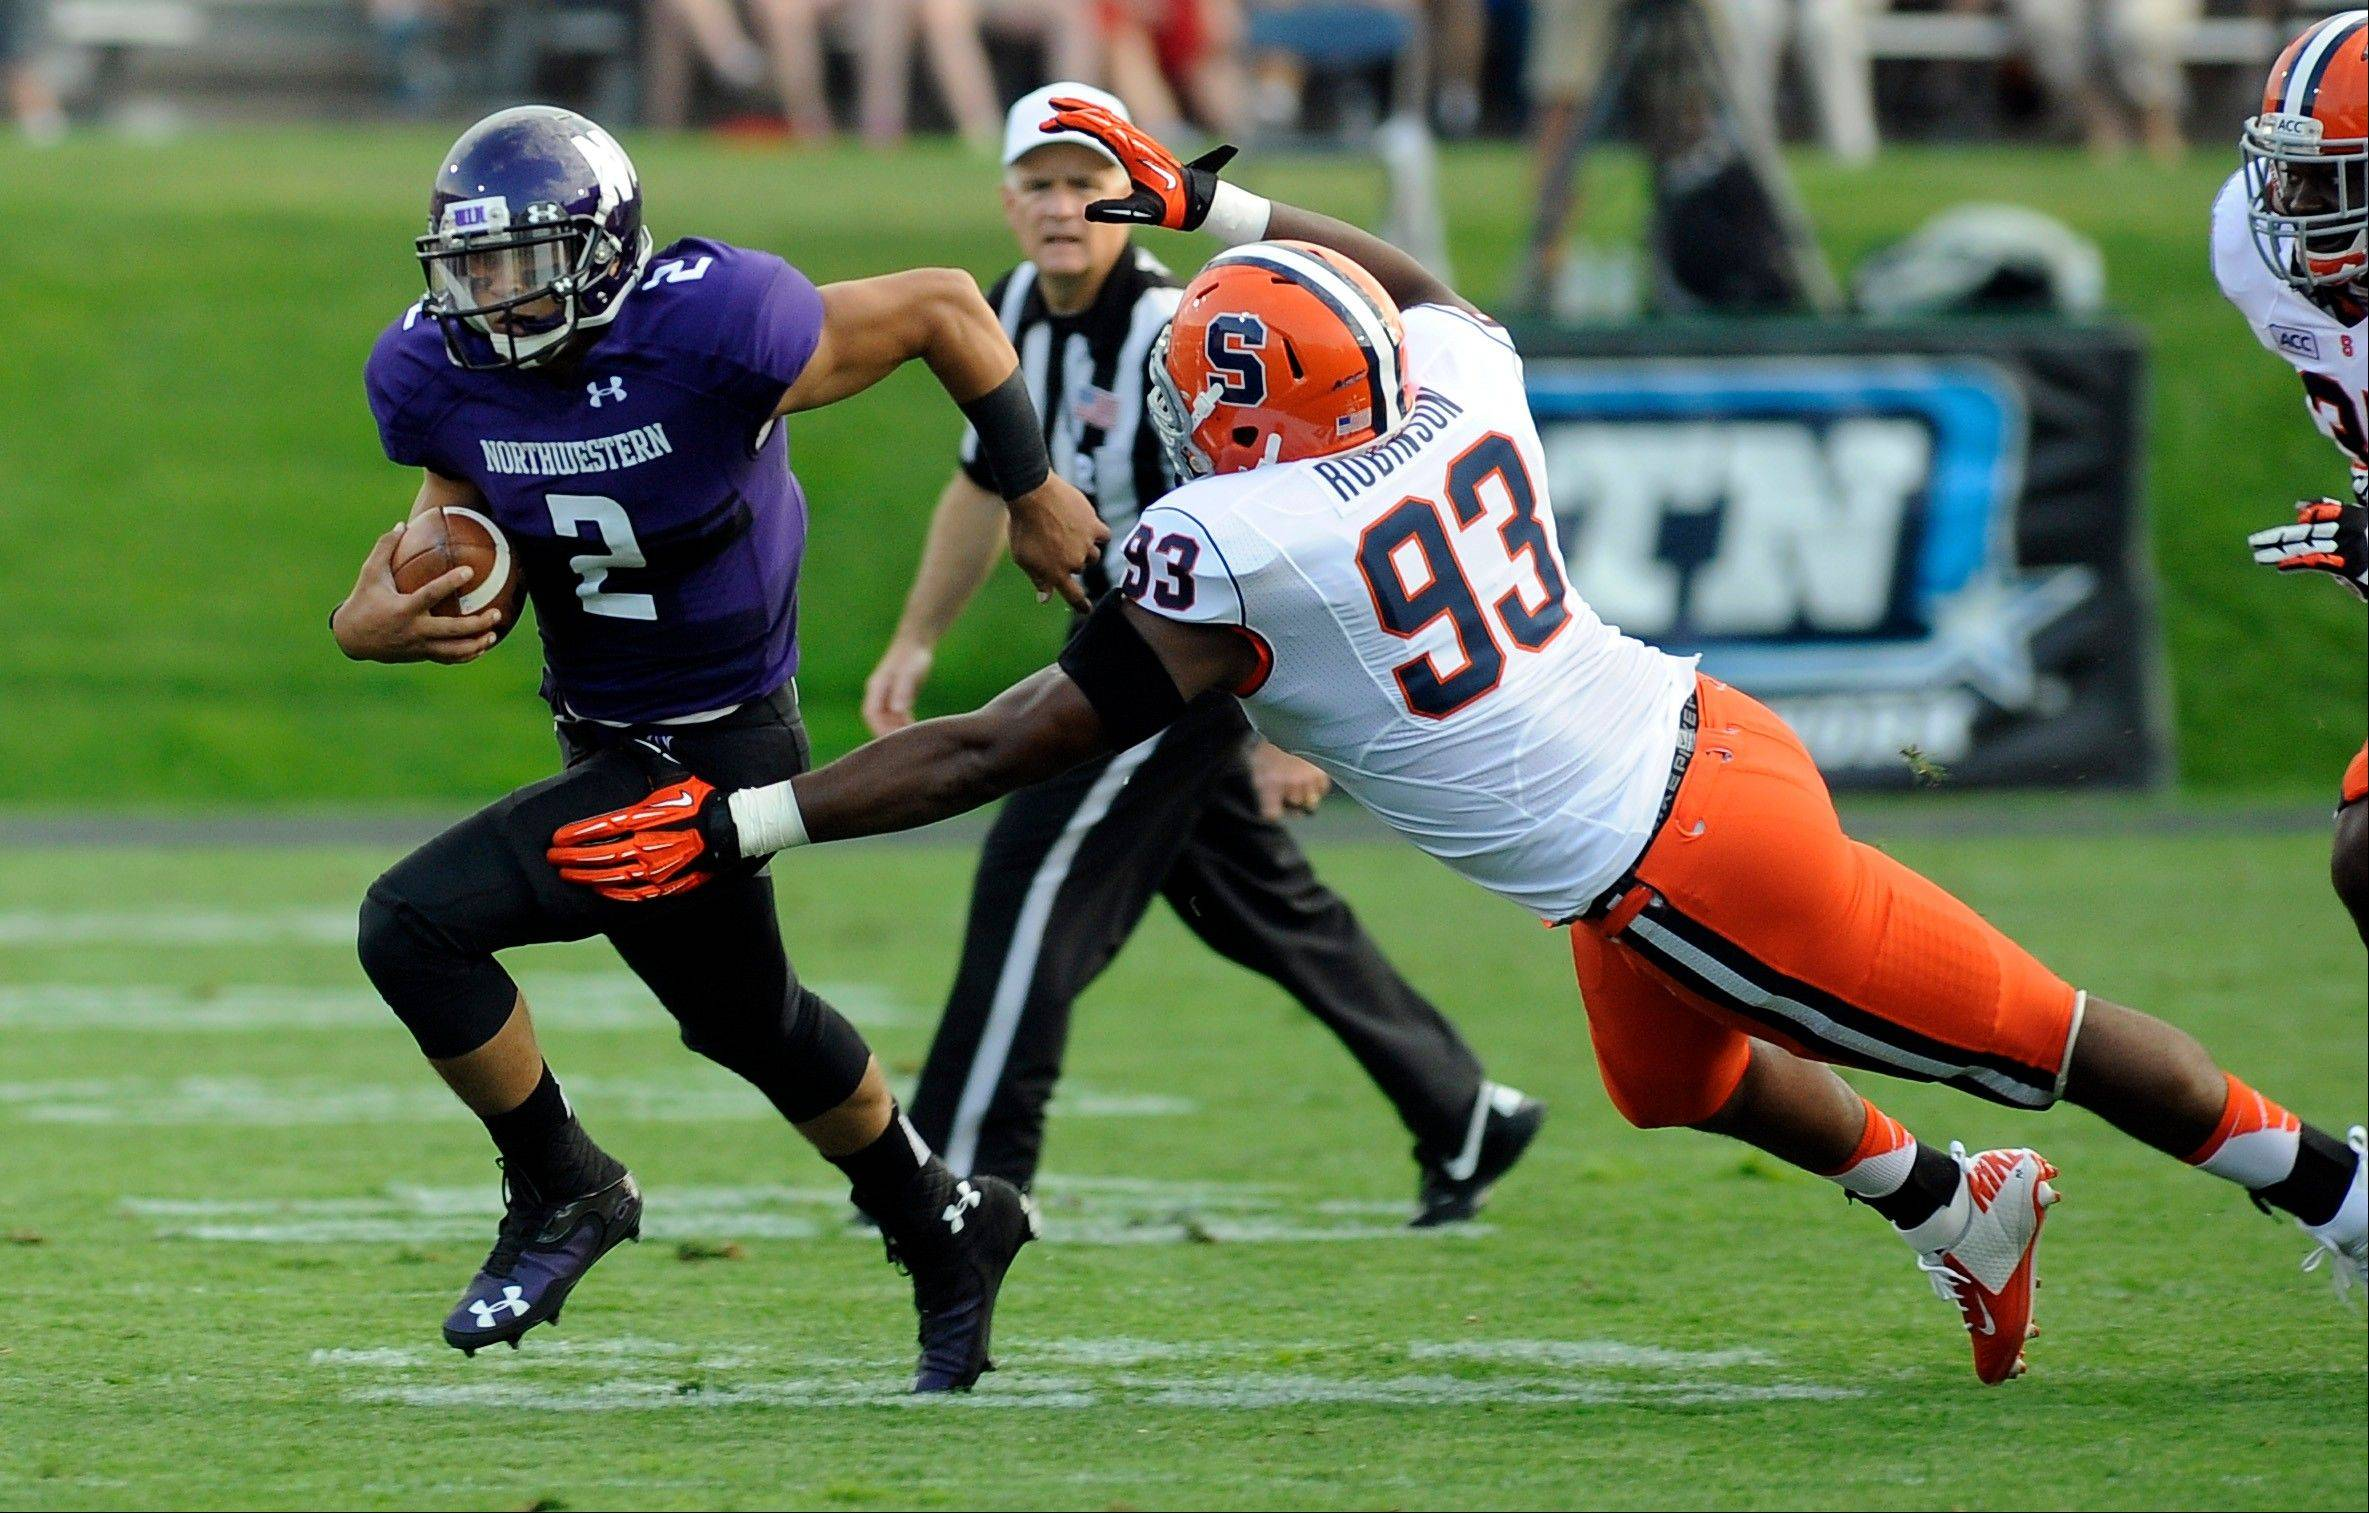 Syracuse's Micah Robinson chases Northwestern University's Kain Colter during the first half of Saturday's game in Evanston.